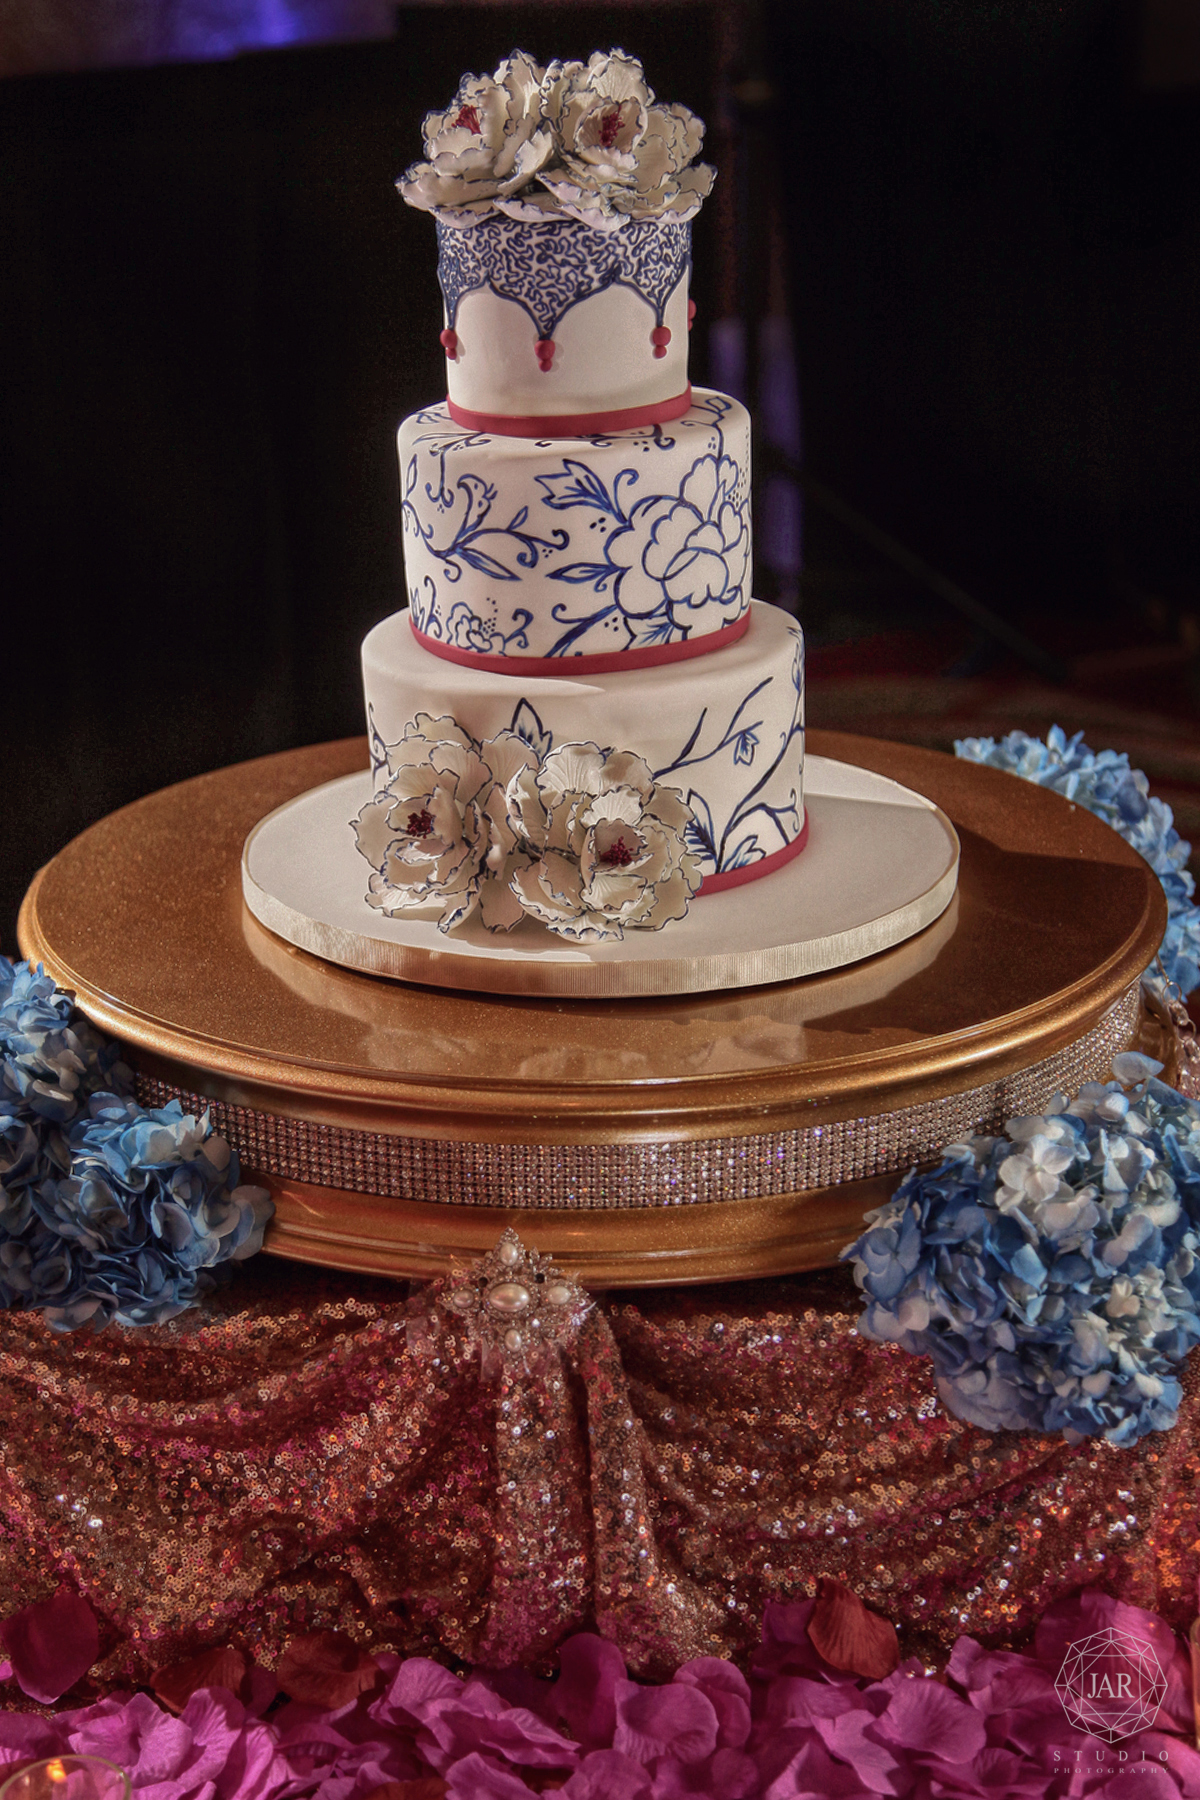 20-unique-wedding-cake-indian-blue-white-flowers-gold-beautiful.JPG